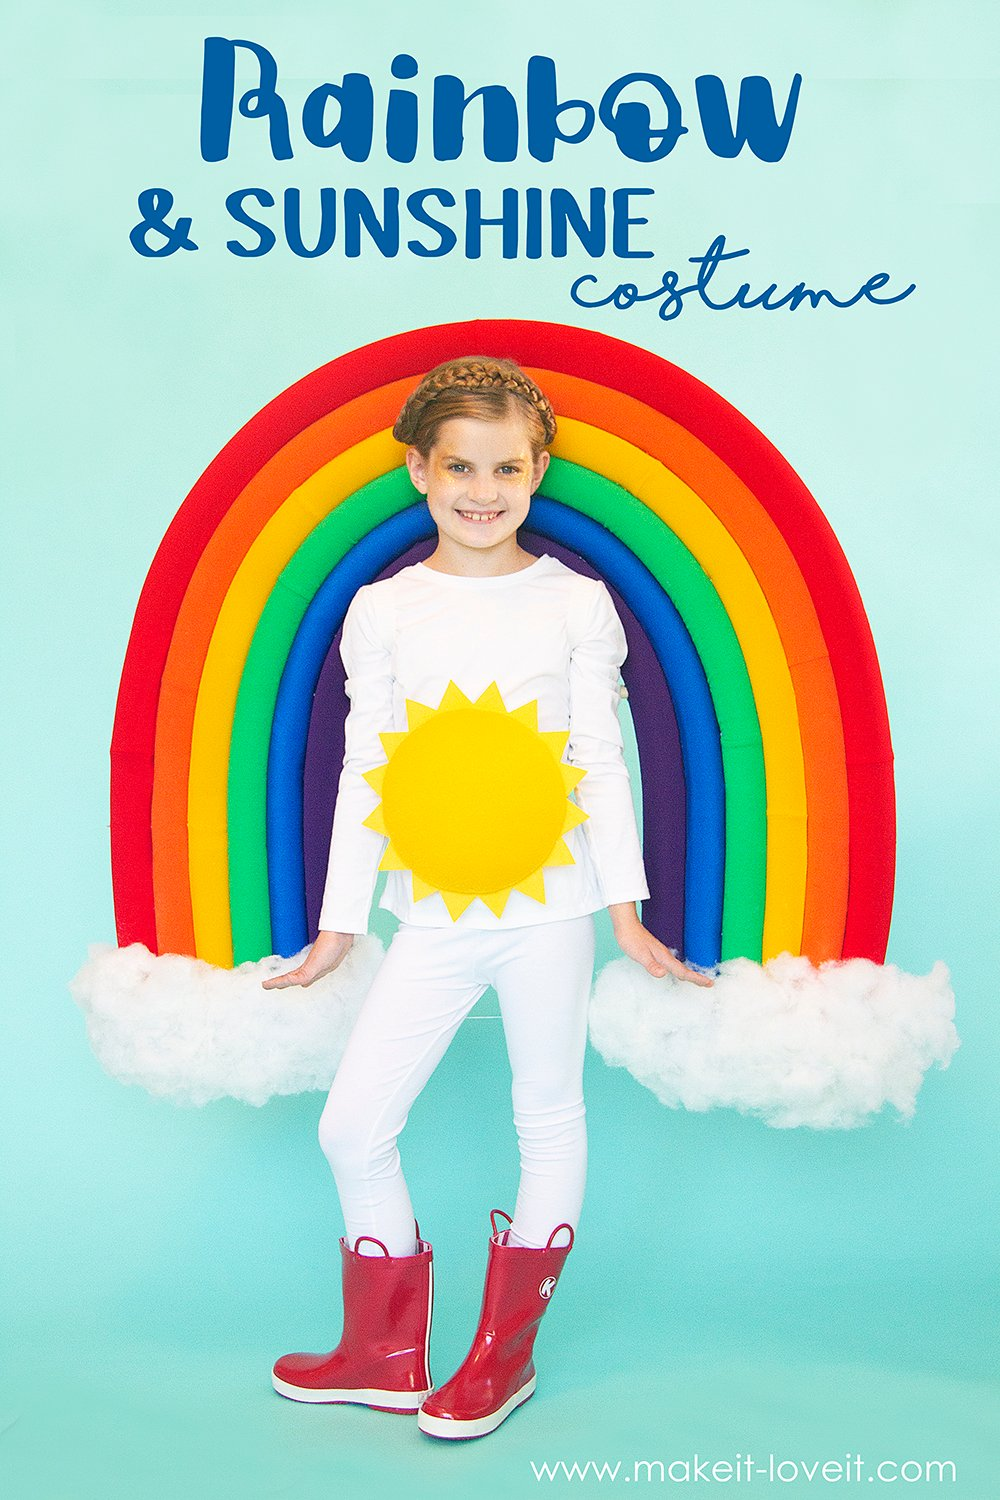 Make a rainbow & sunshine costume